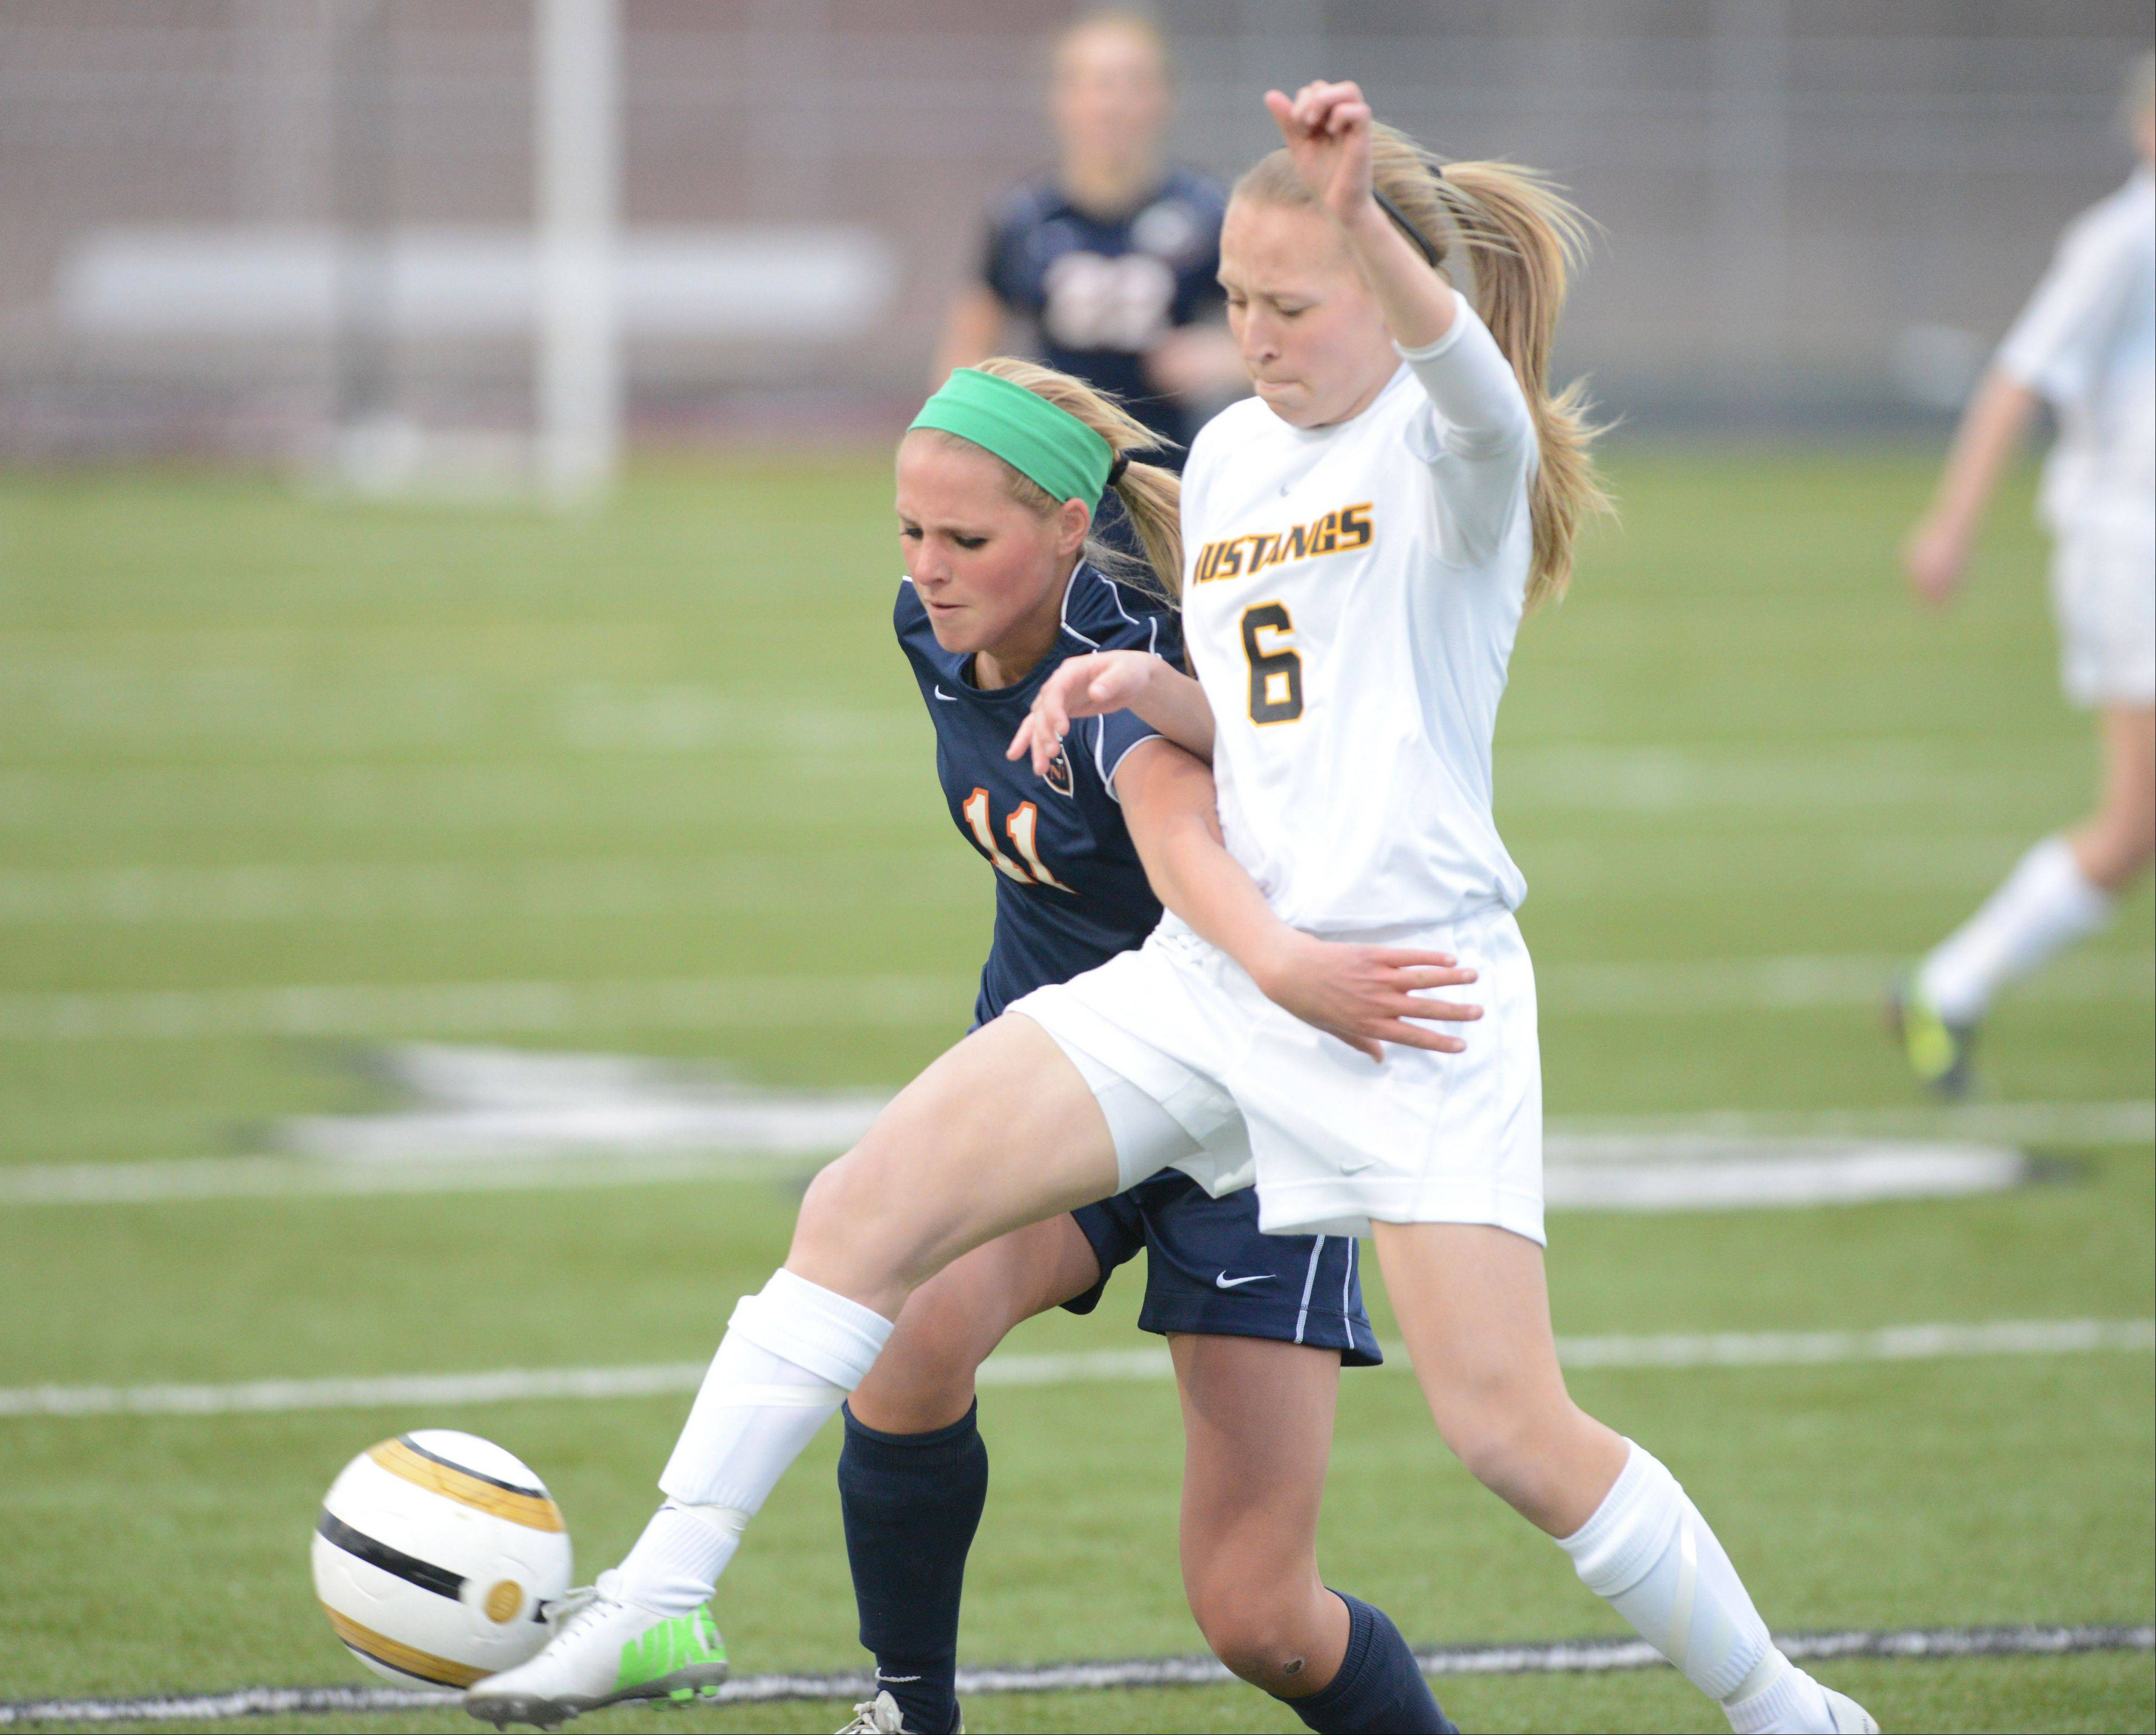 Sarah Feder, left, of Naperville North and Alena Sidwell of Metea Valley dual for the ball during the Naperville North at Metea Valley girls soccer game Tuesday.